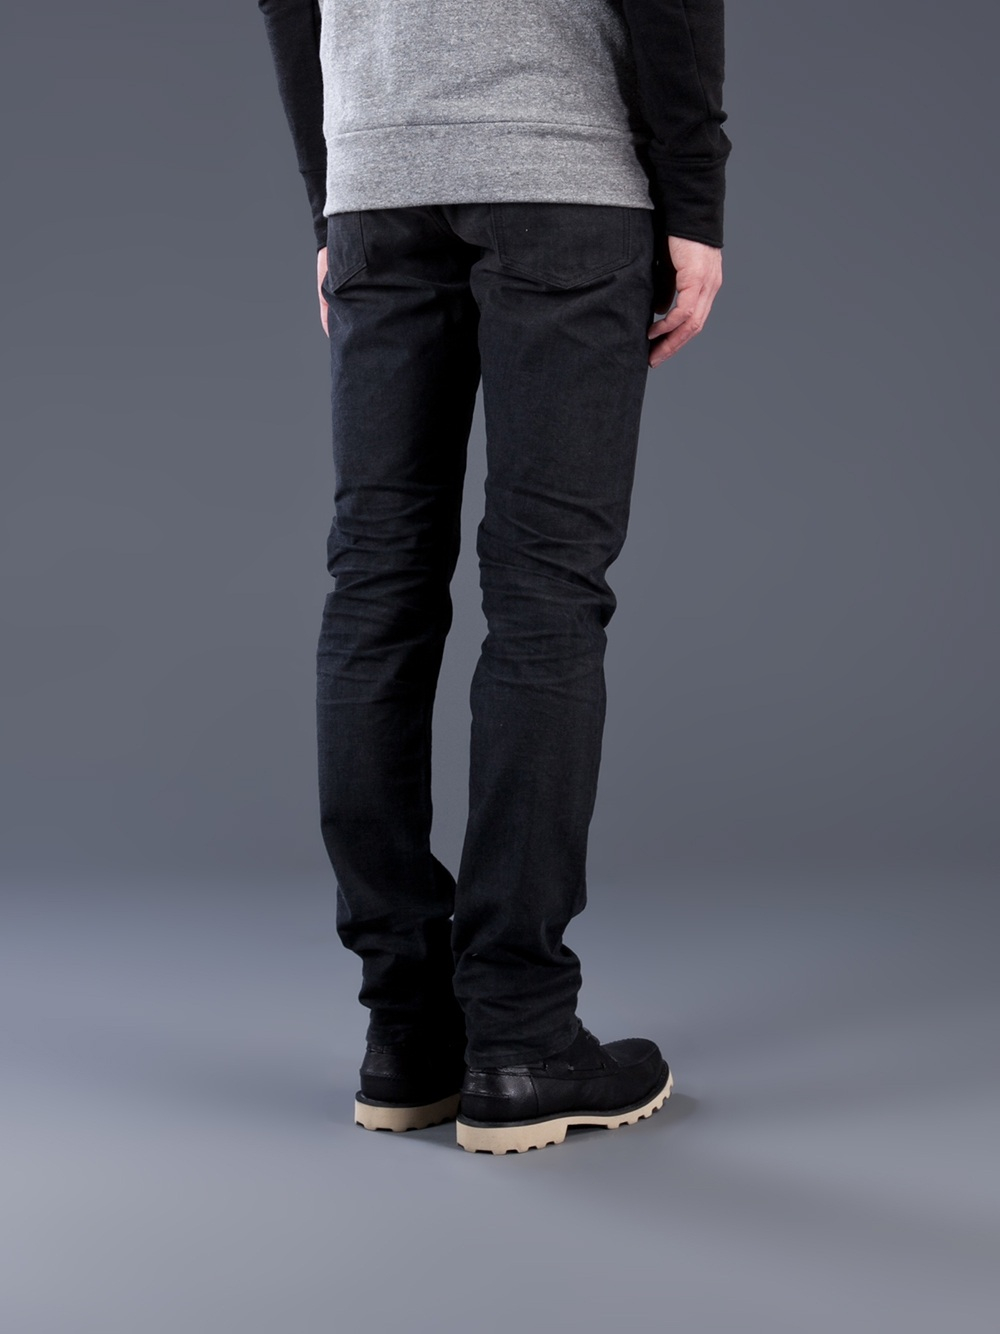 Excellent Online washed out jeans - Grey John Elliott + Co Manchester Great Sale Cheap Price Sale The Cheapest Cheap Huge Surprise iDcKM